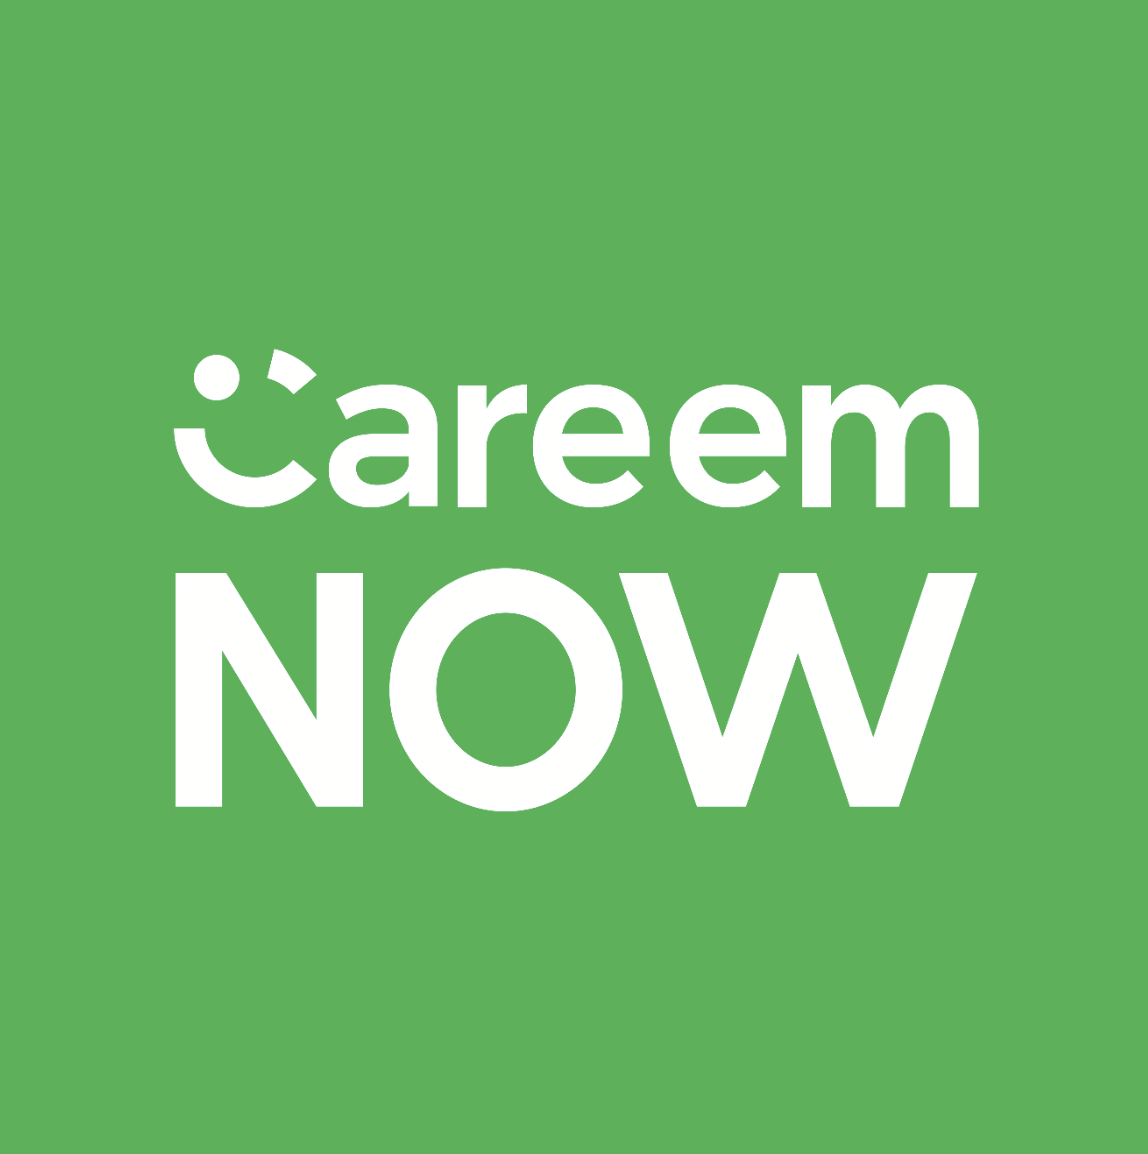 Order food with Careem NOW | Food delivery from Careem